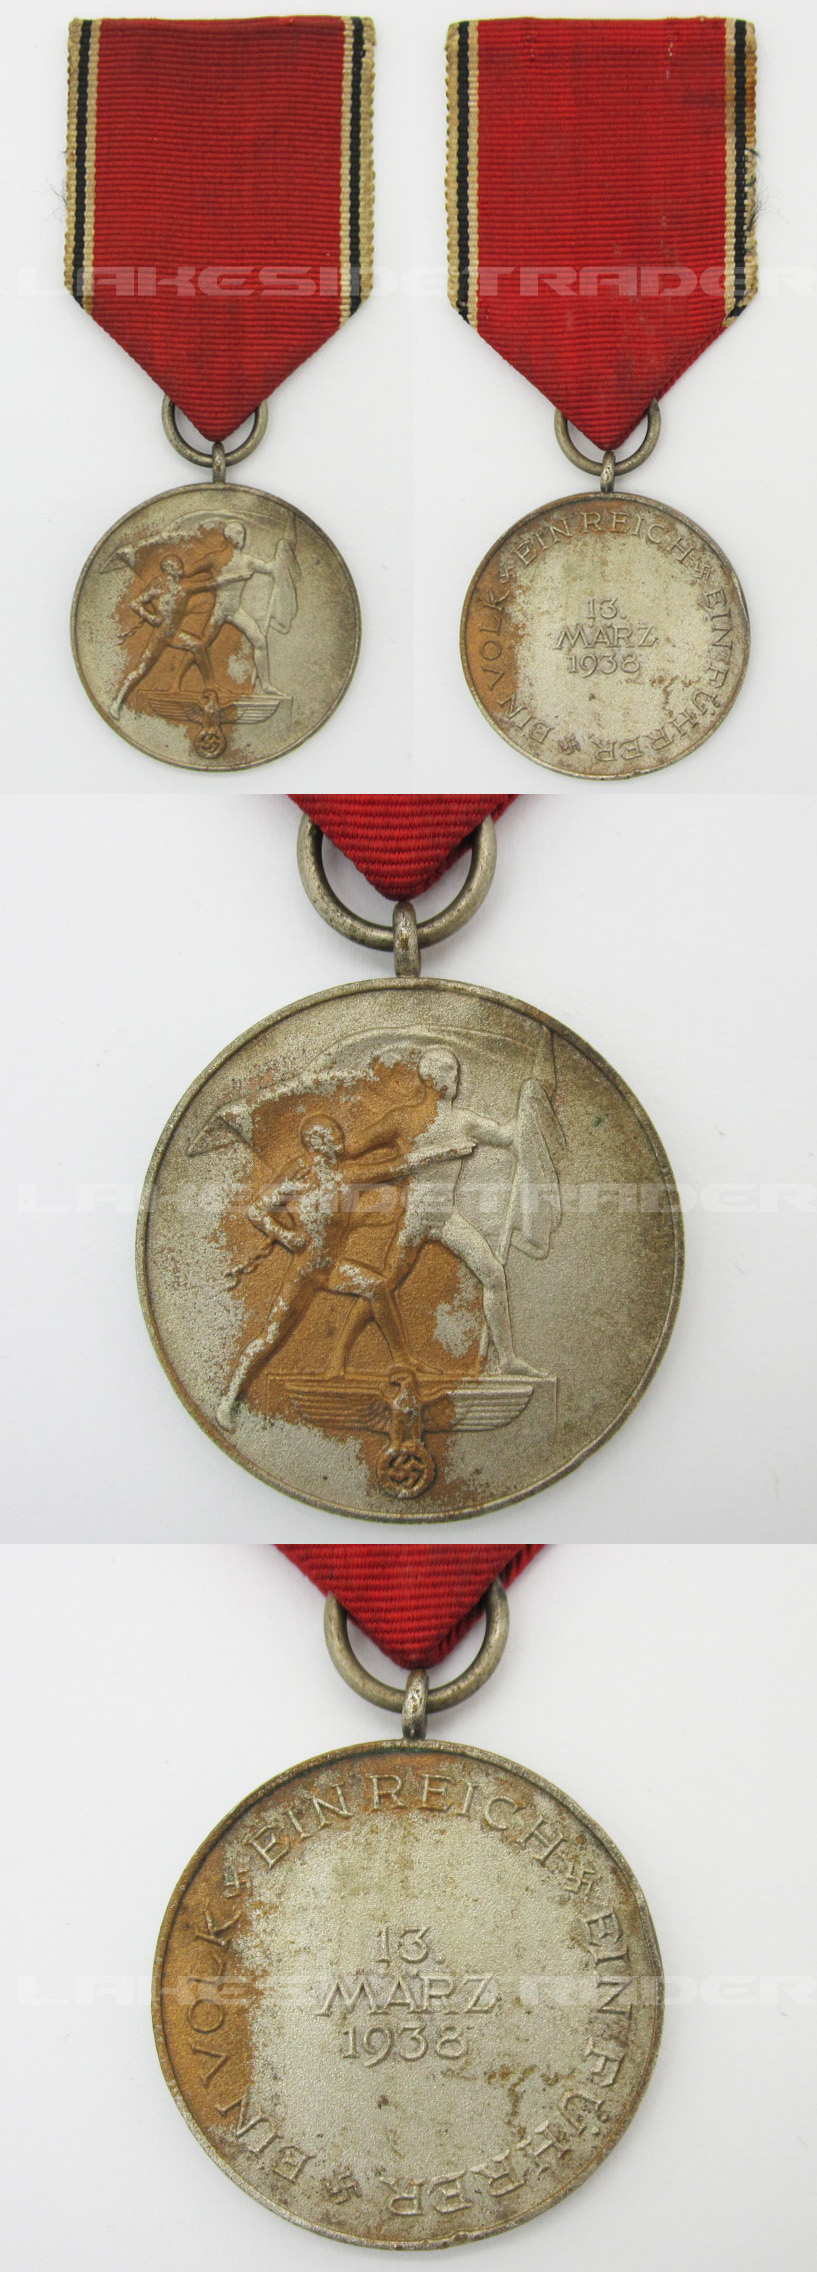 Anschluss Commemorative Medal